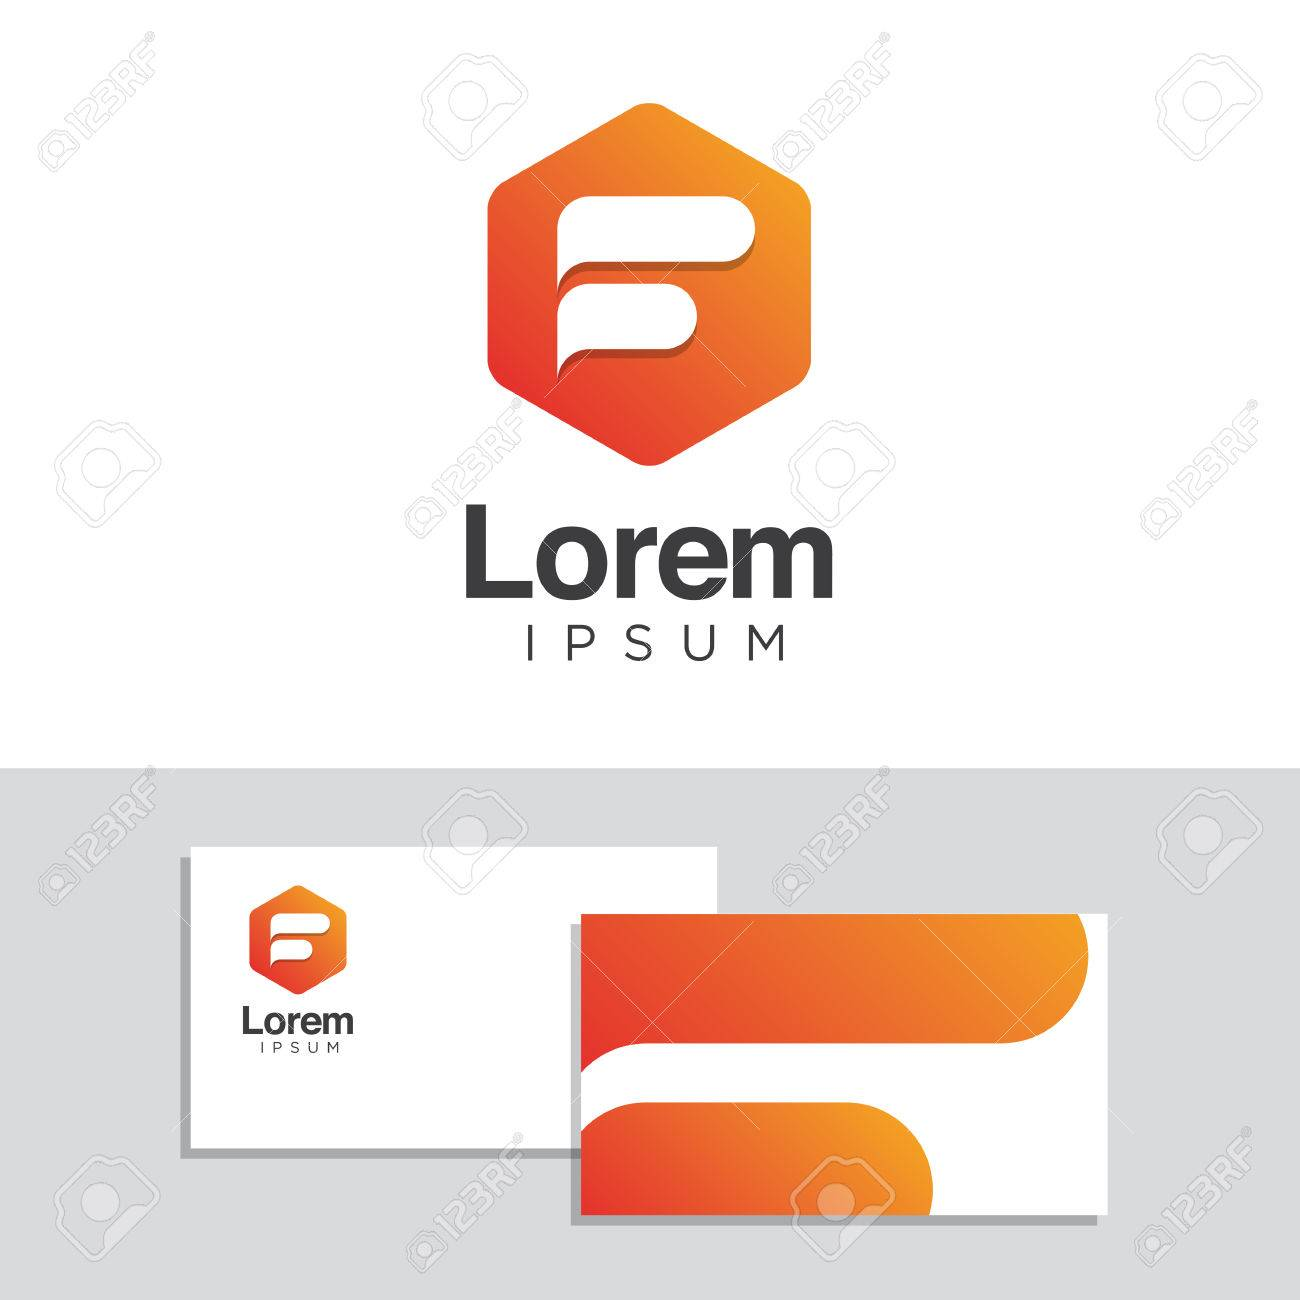 Vector graphic design business logo - Logo Design Elements With Business Card Template Vector Graphic Design Elements For Company Logo